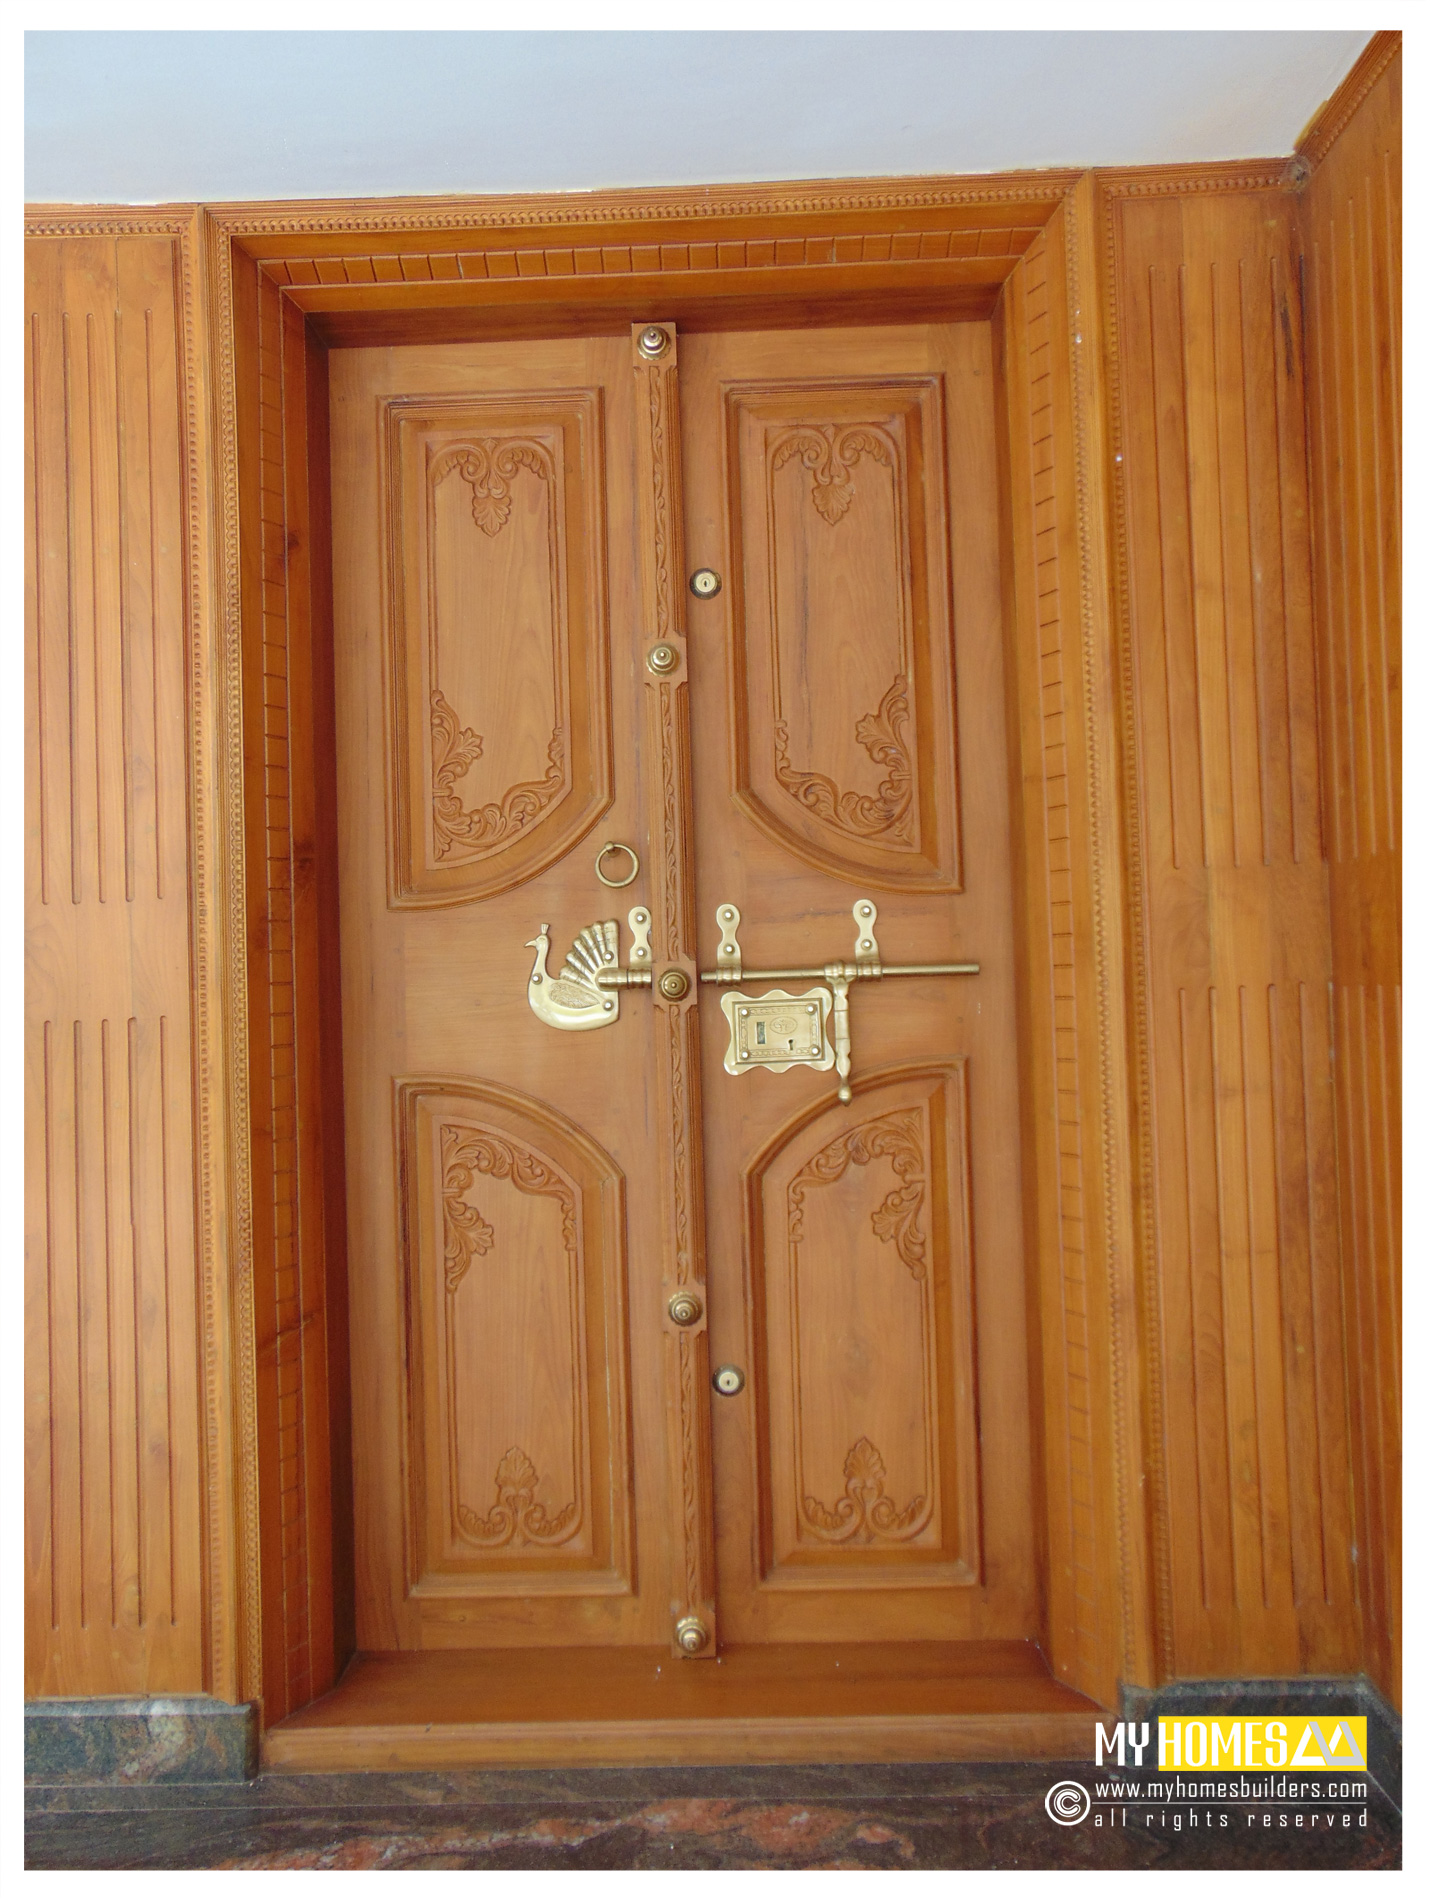 New idea for homes main door designs in kerala india for Home front door design indian style